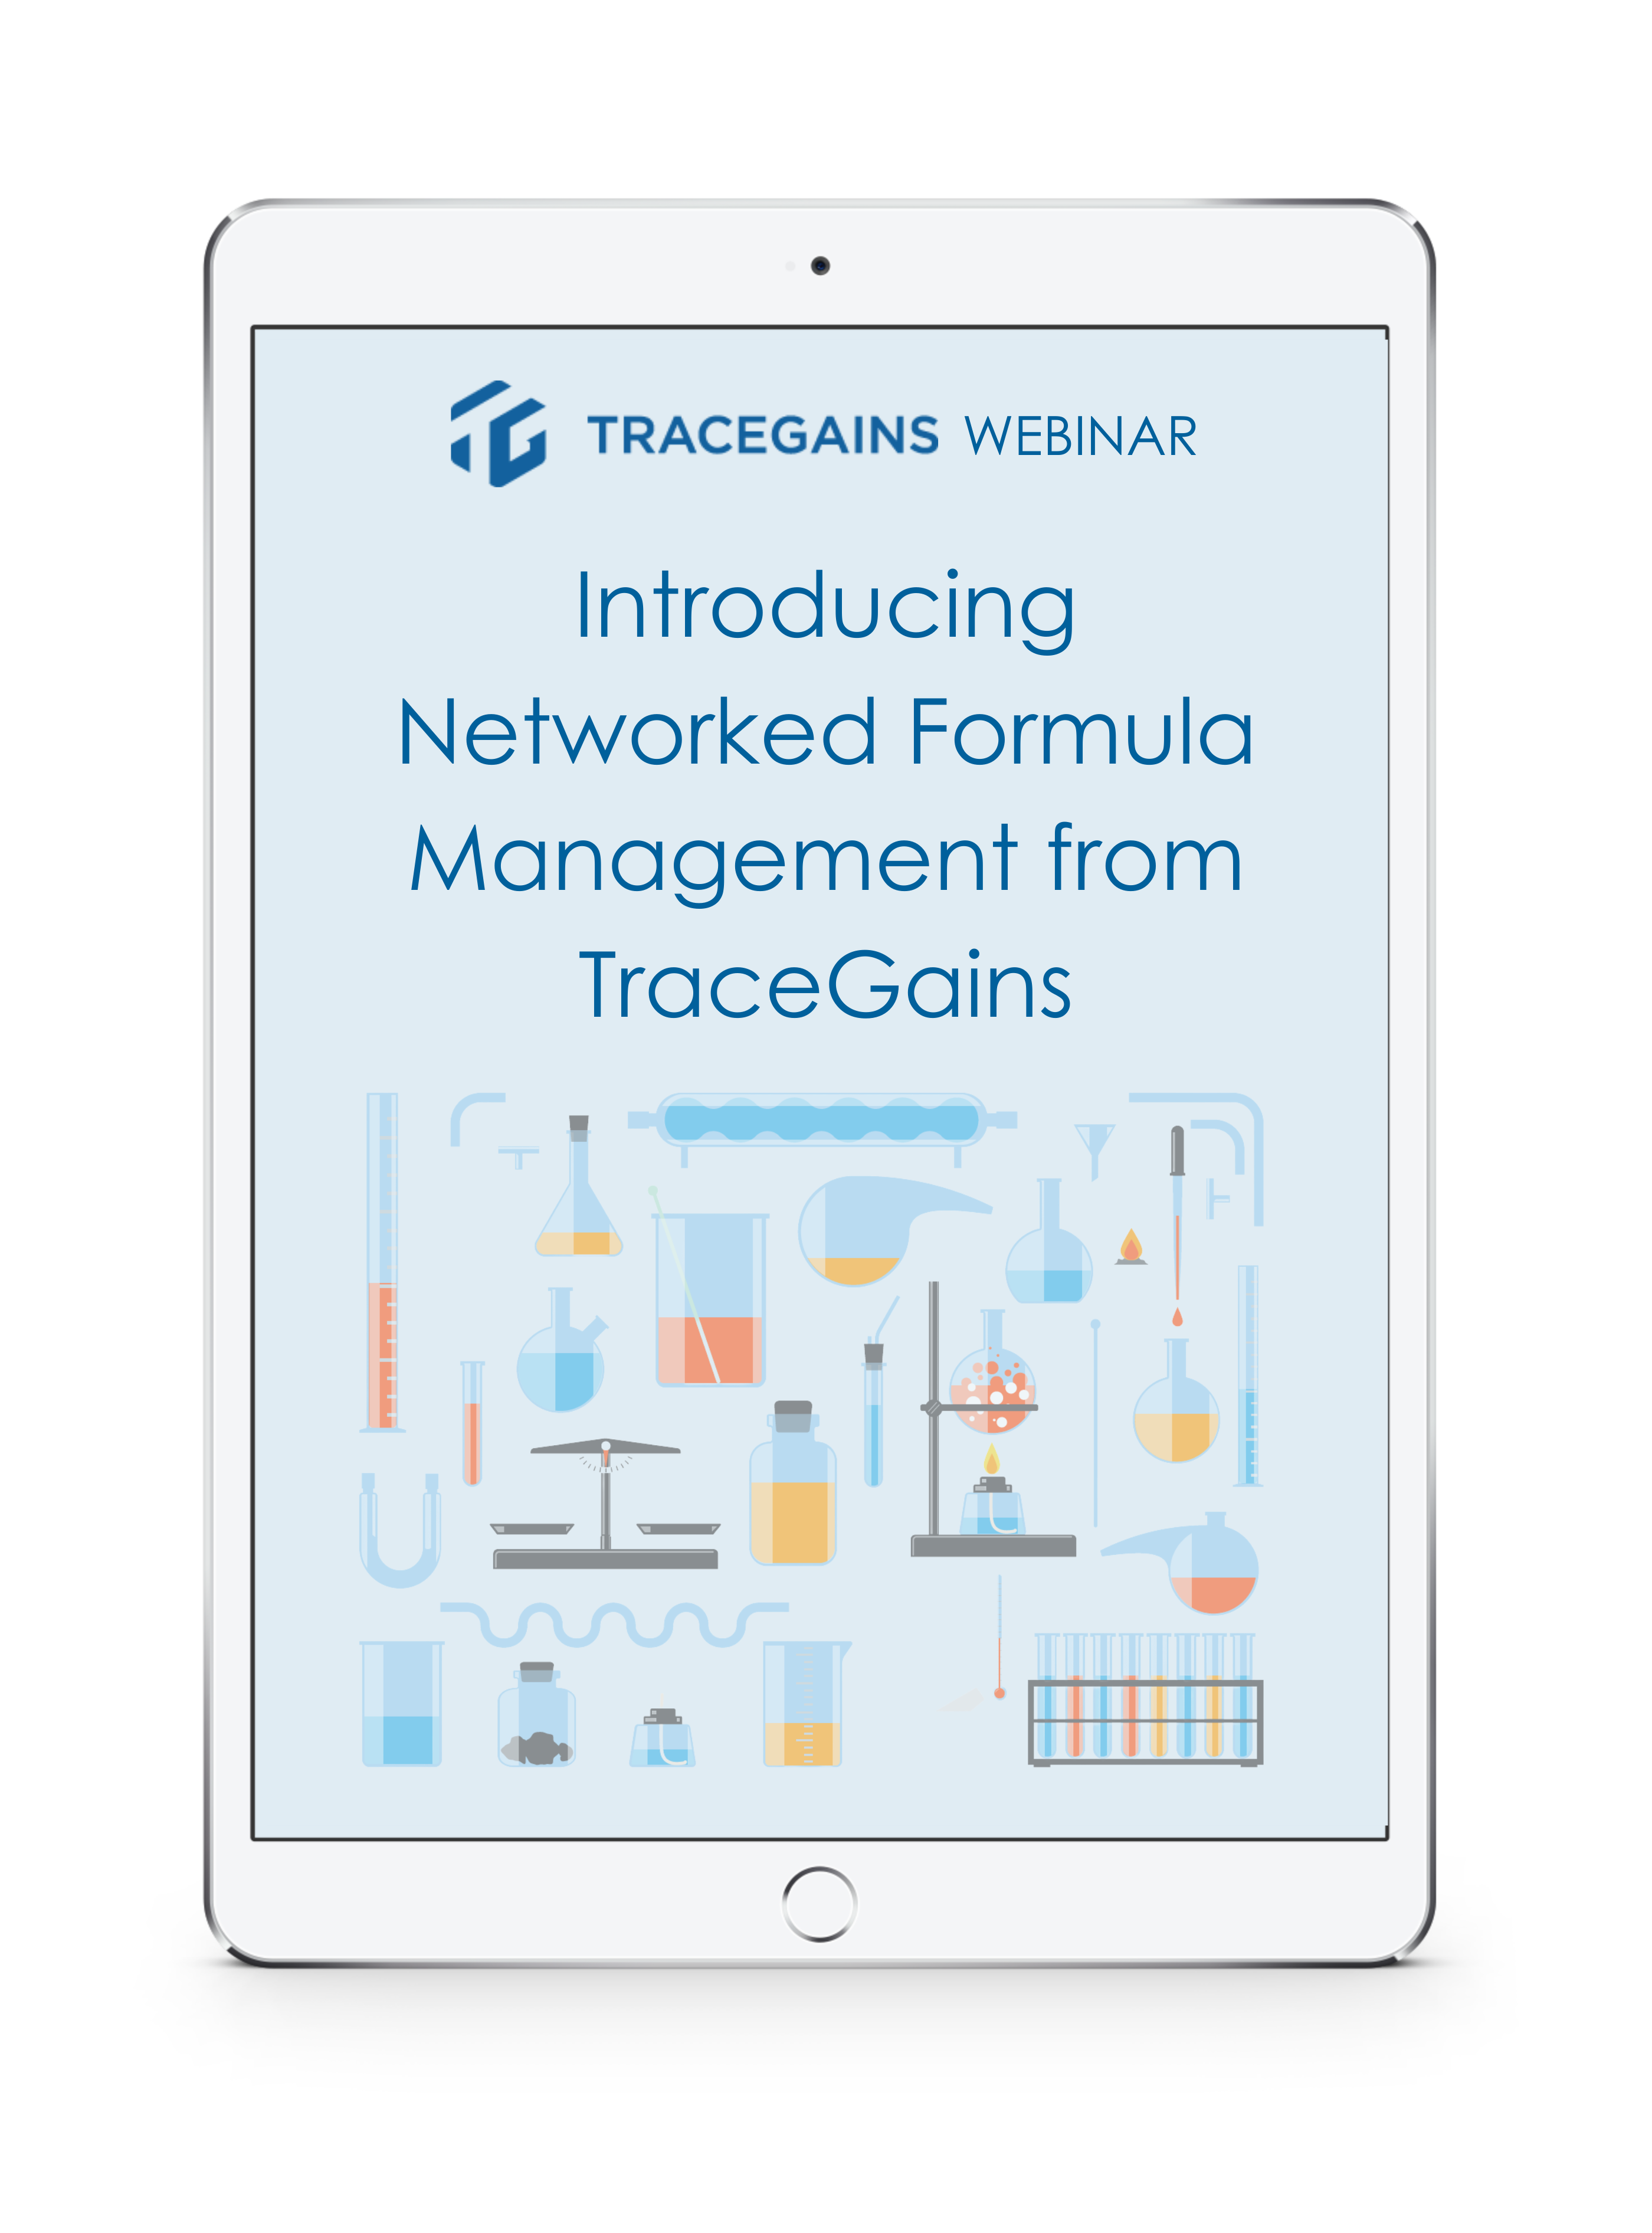 TraceGains Webinar: Introducing Networked Formula Management from TraceGains